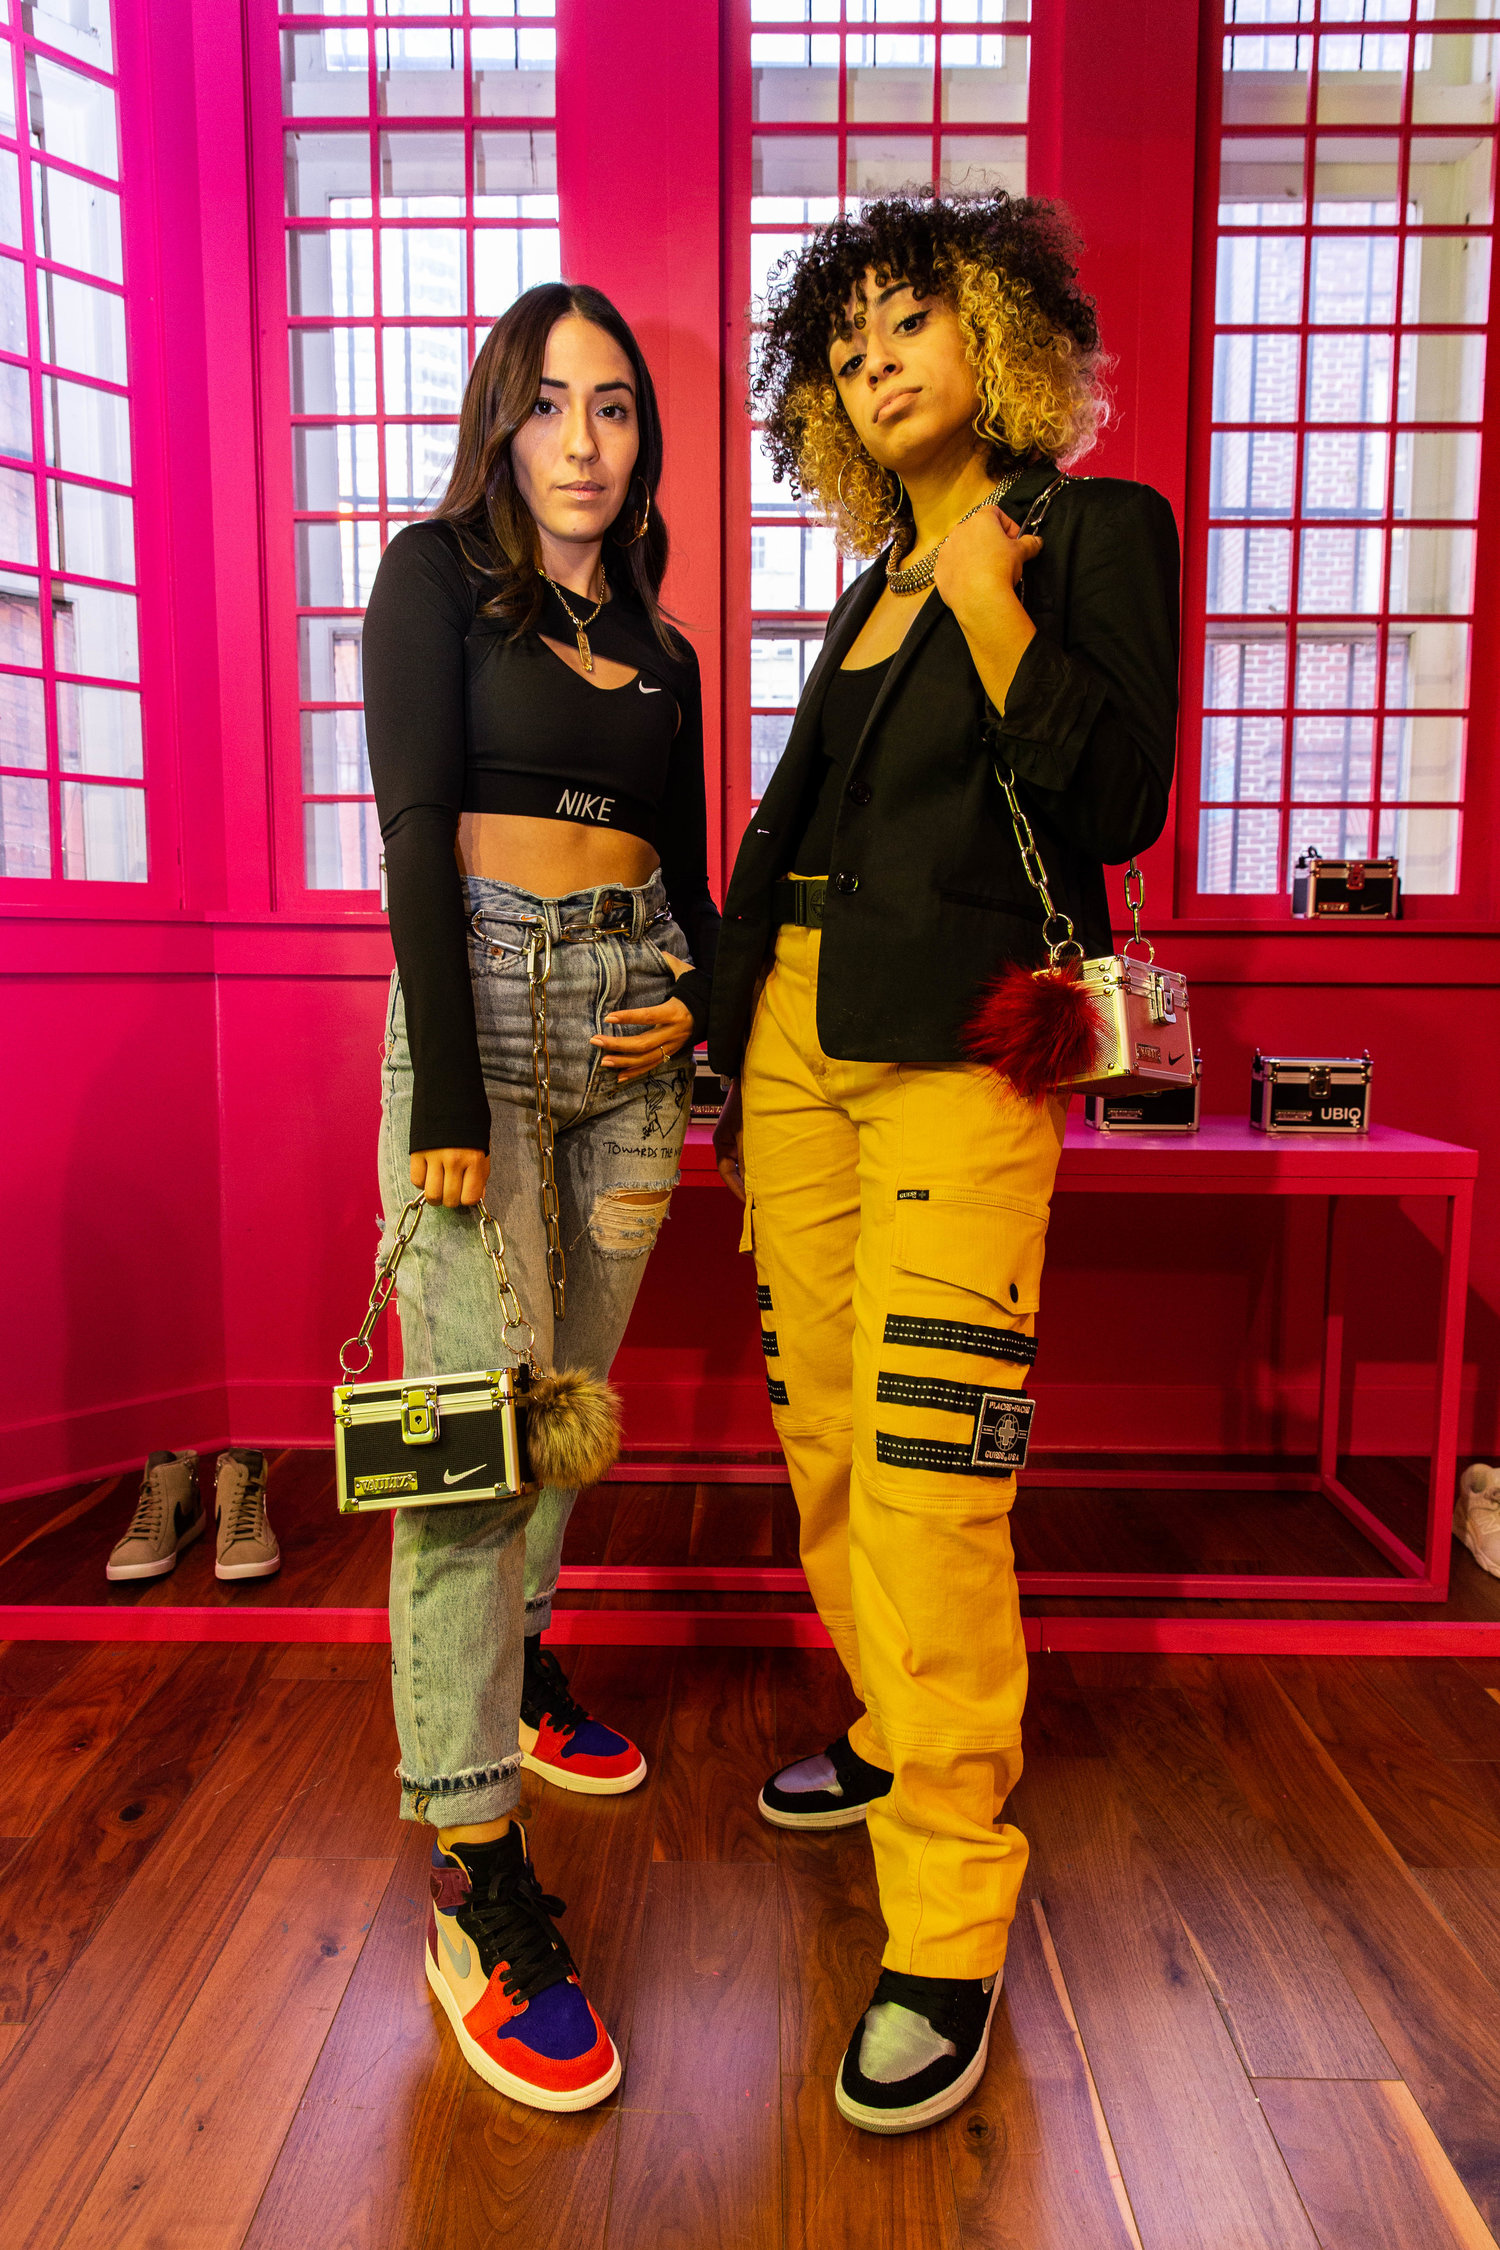 226edd189bf7 Chick Chat  Changing the SneakHER Game with Alex and Milana of Vainglory — CNK  DailyChicksNKicks